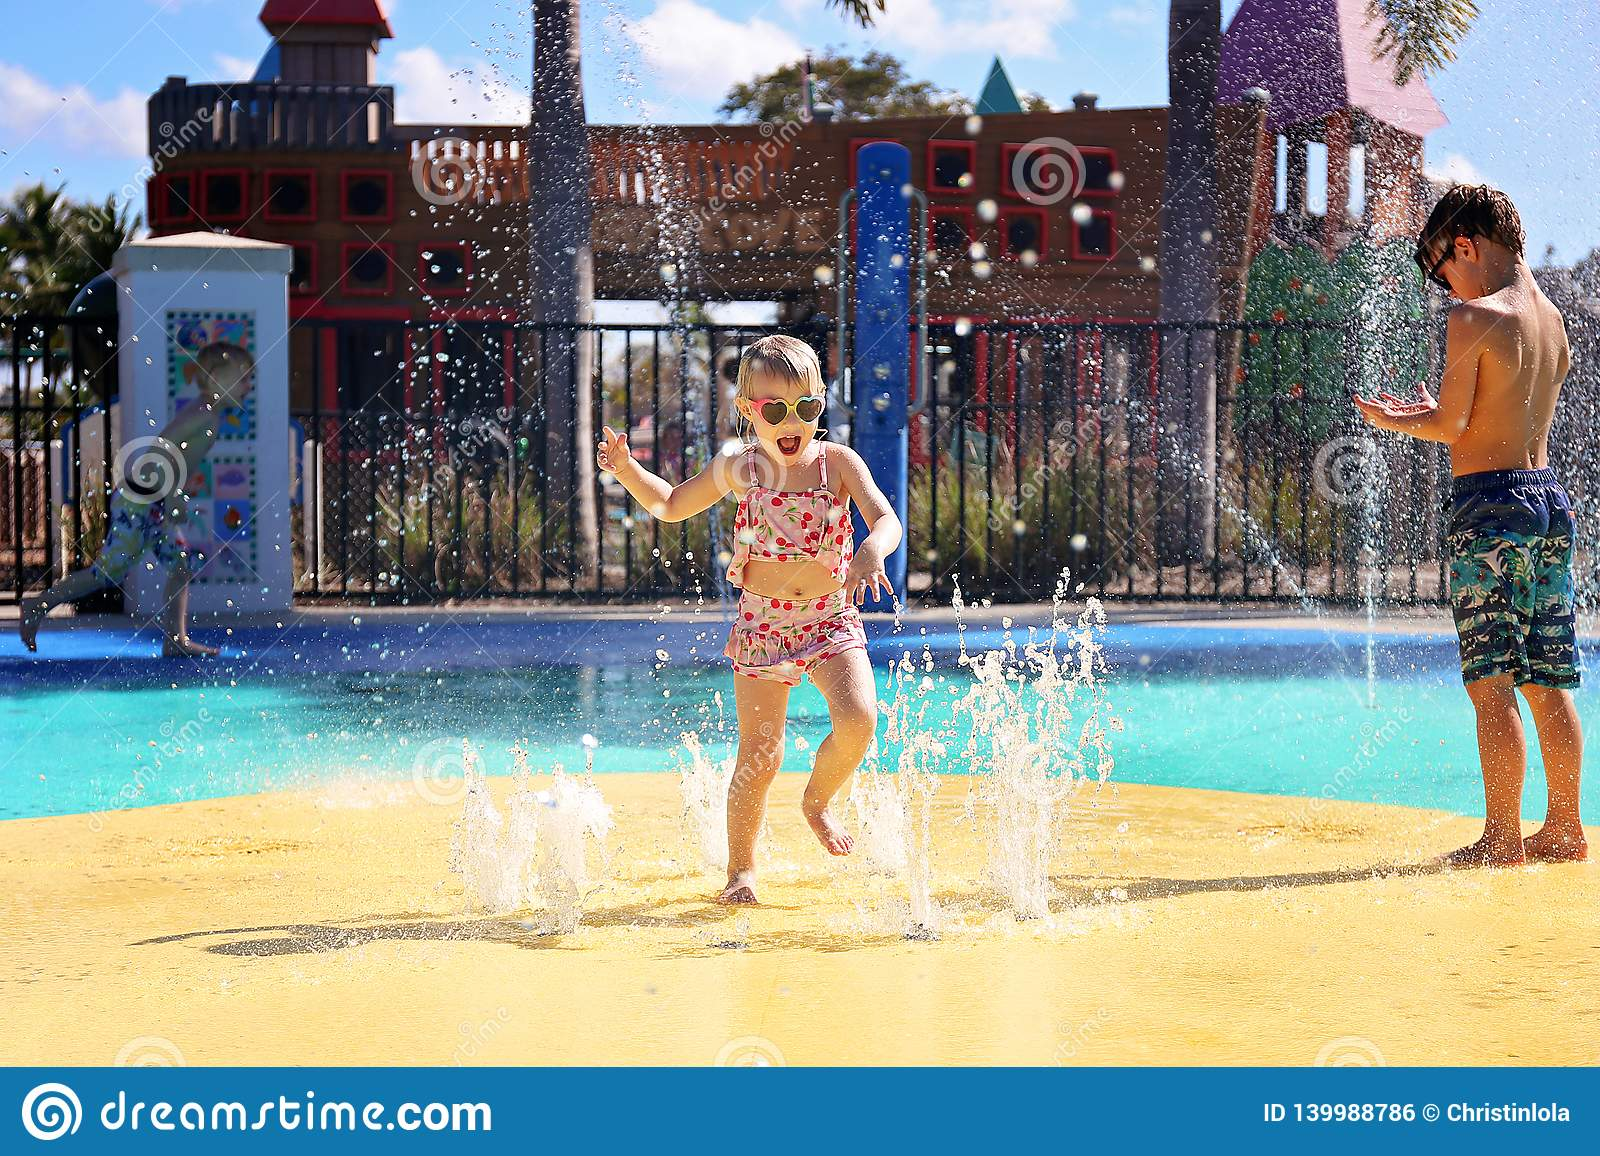 Happy Toddler Child Jumping and Playing in Water Fountains at Splash Park